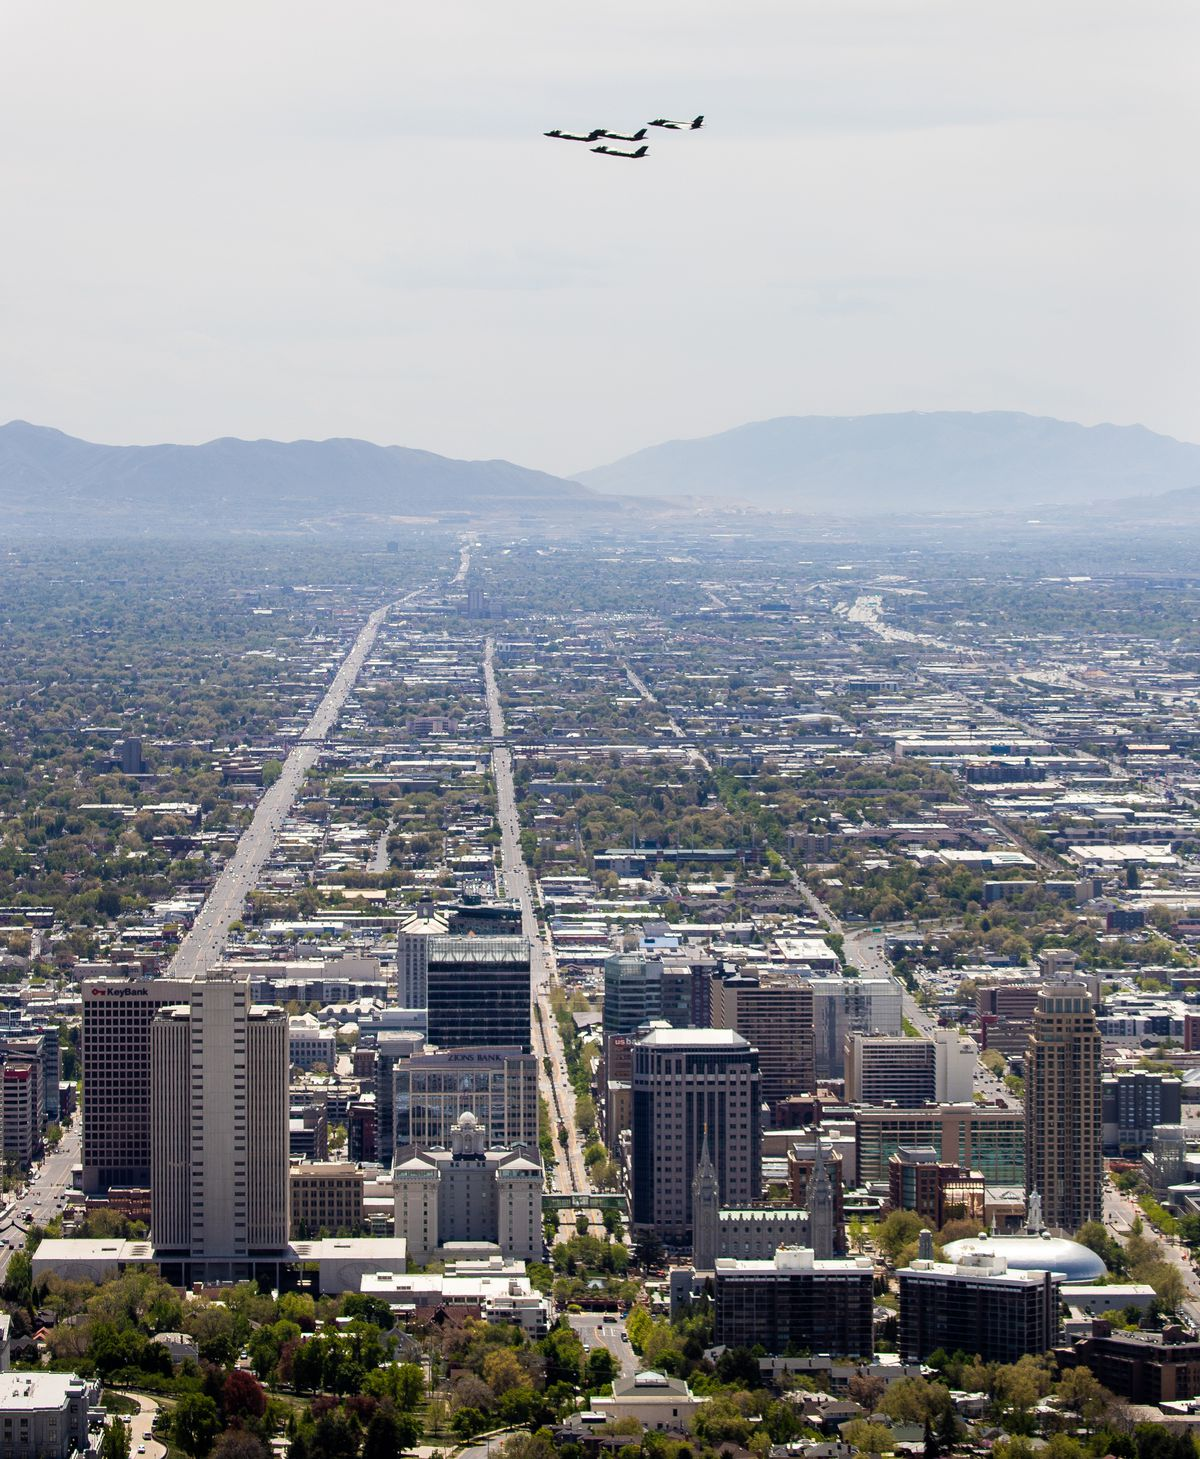 The Air Force F-35A Lightning II demonstration team performs a flyover above Salt Lake City, on a path covering a large swath of the state, to salute front-line COVID-19 workers on Thursday, April 30, 2020.